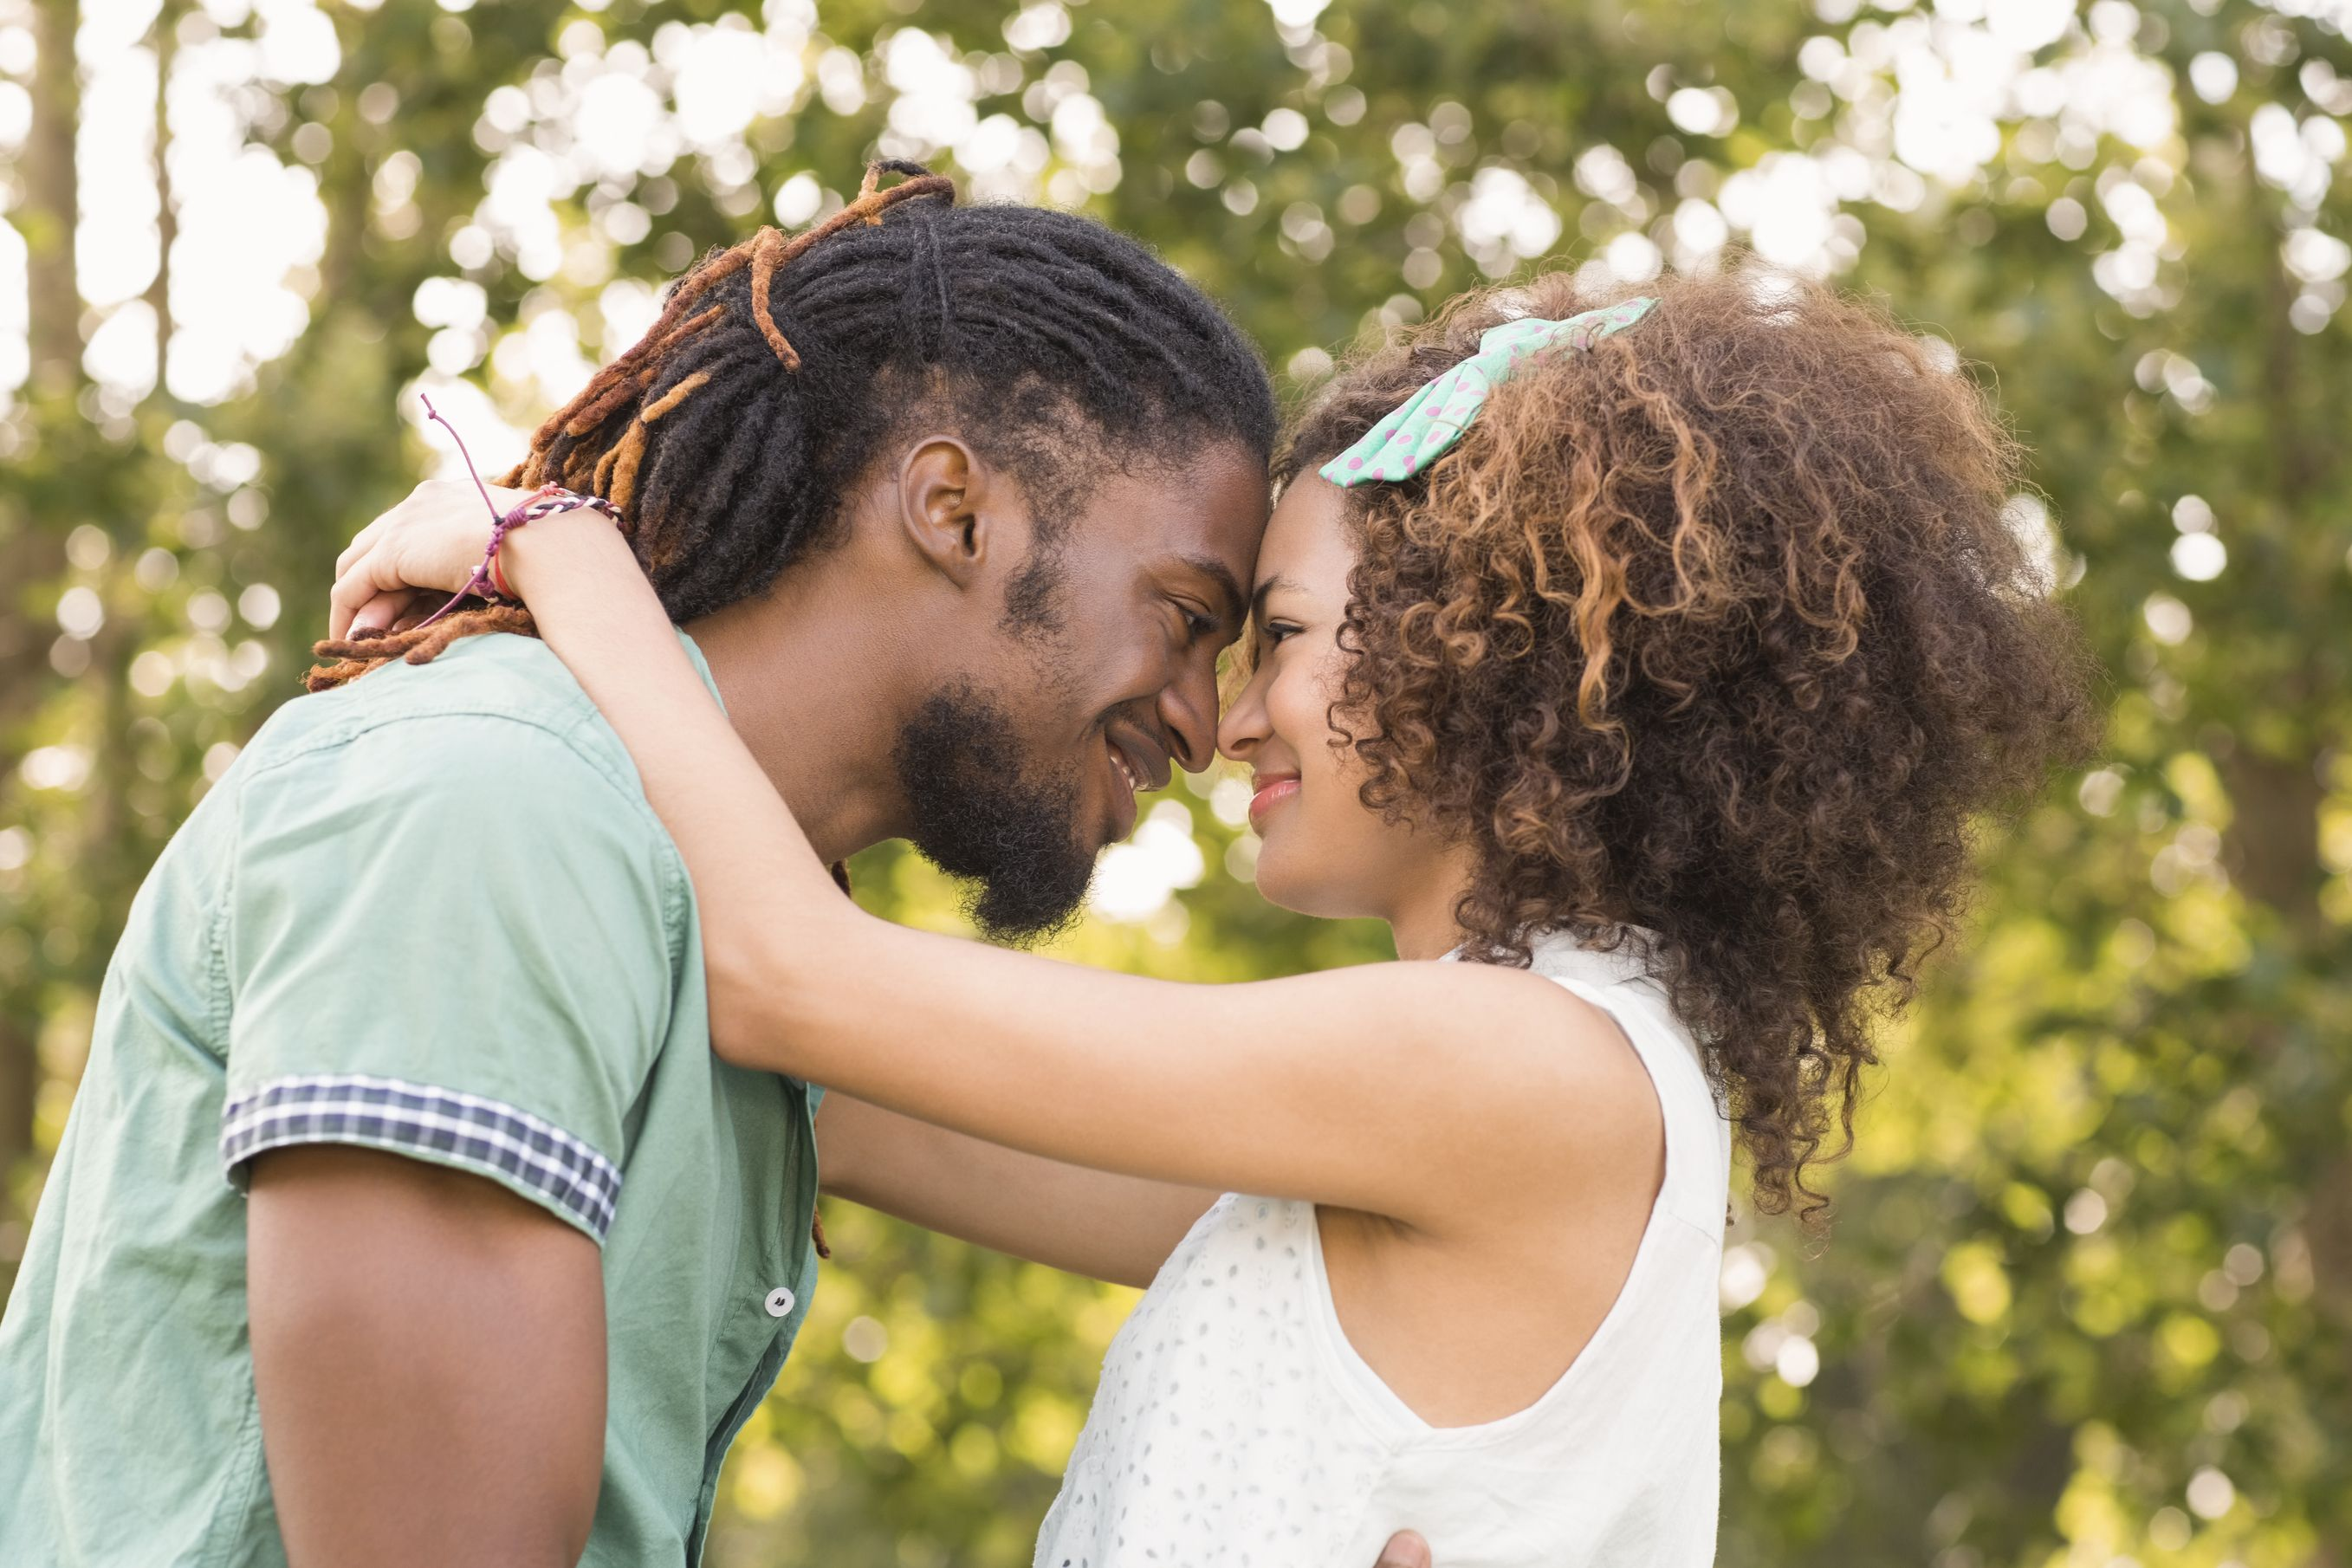 7 Things to Remember If You're a White Person Dating a Person of Color - Everyday Feminism